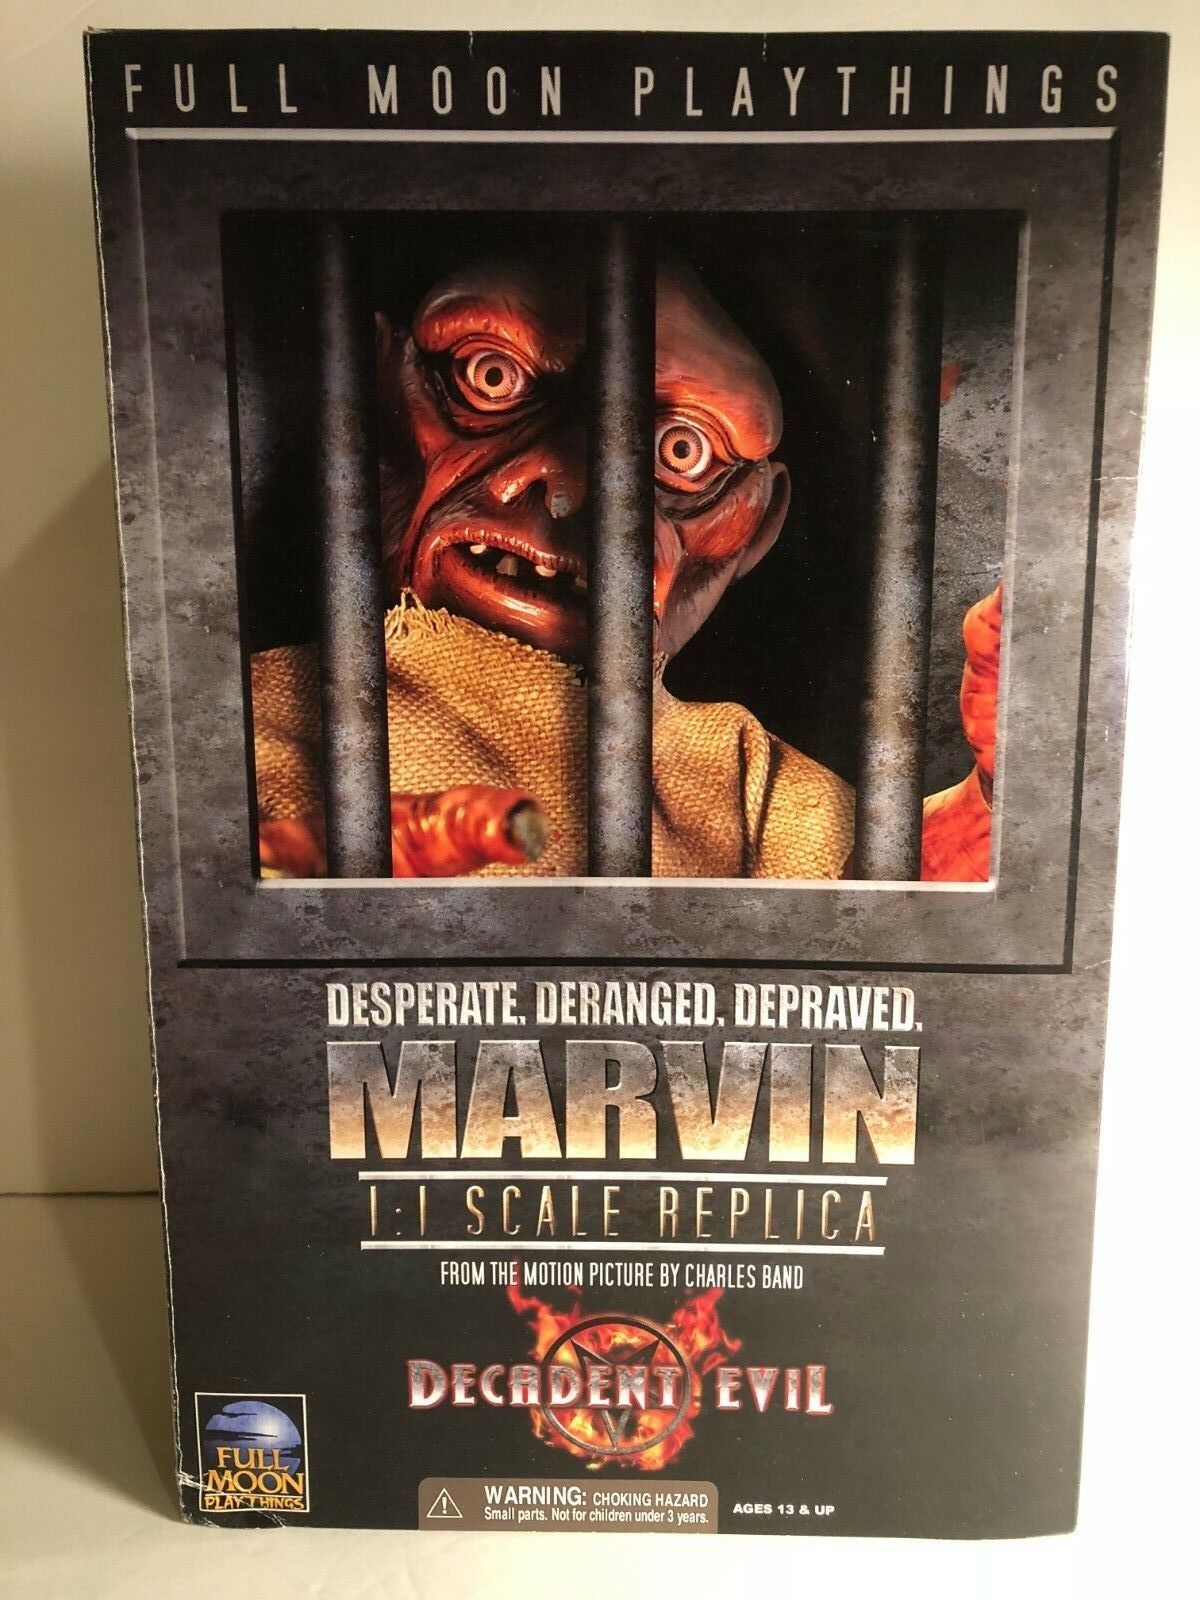 MARVIN Full Moon Playthings Decadent Evil 1 1 Scale 13  Replica Figure NOS